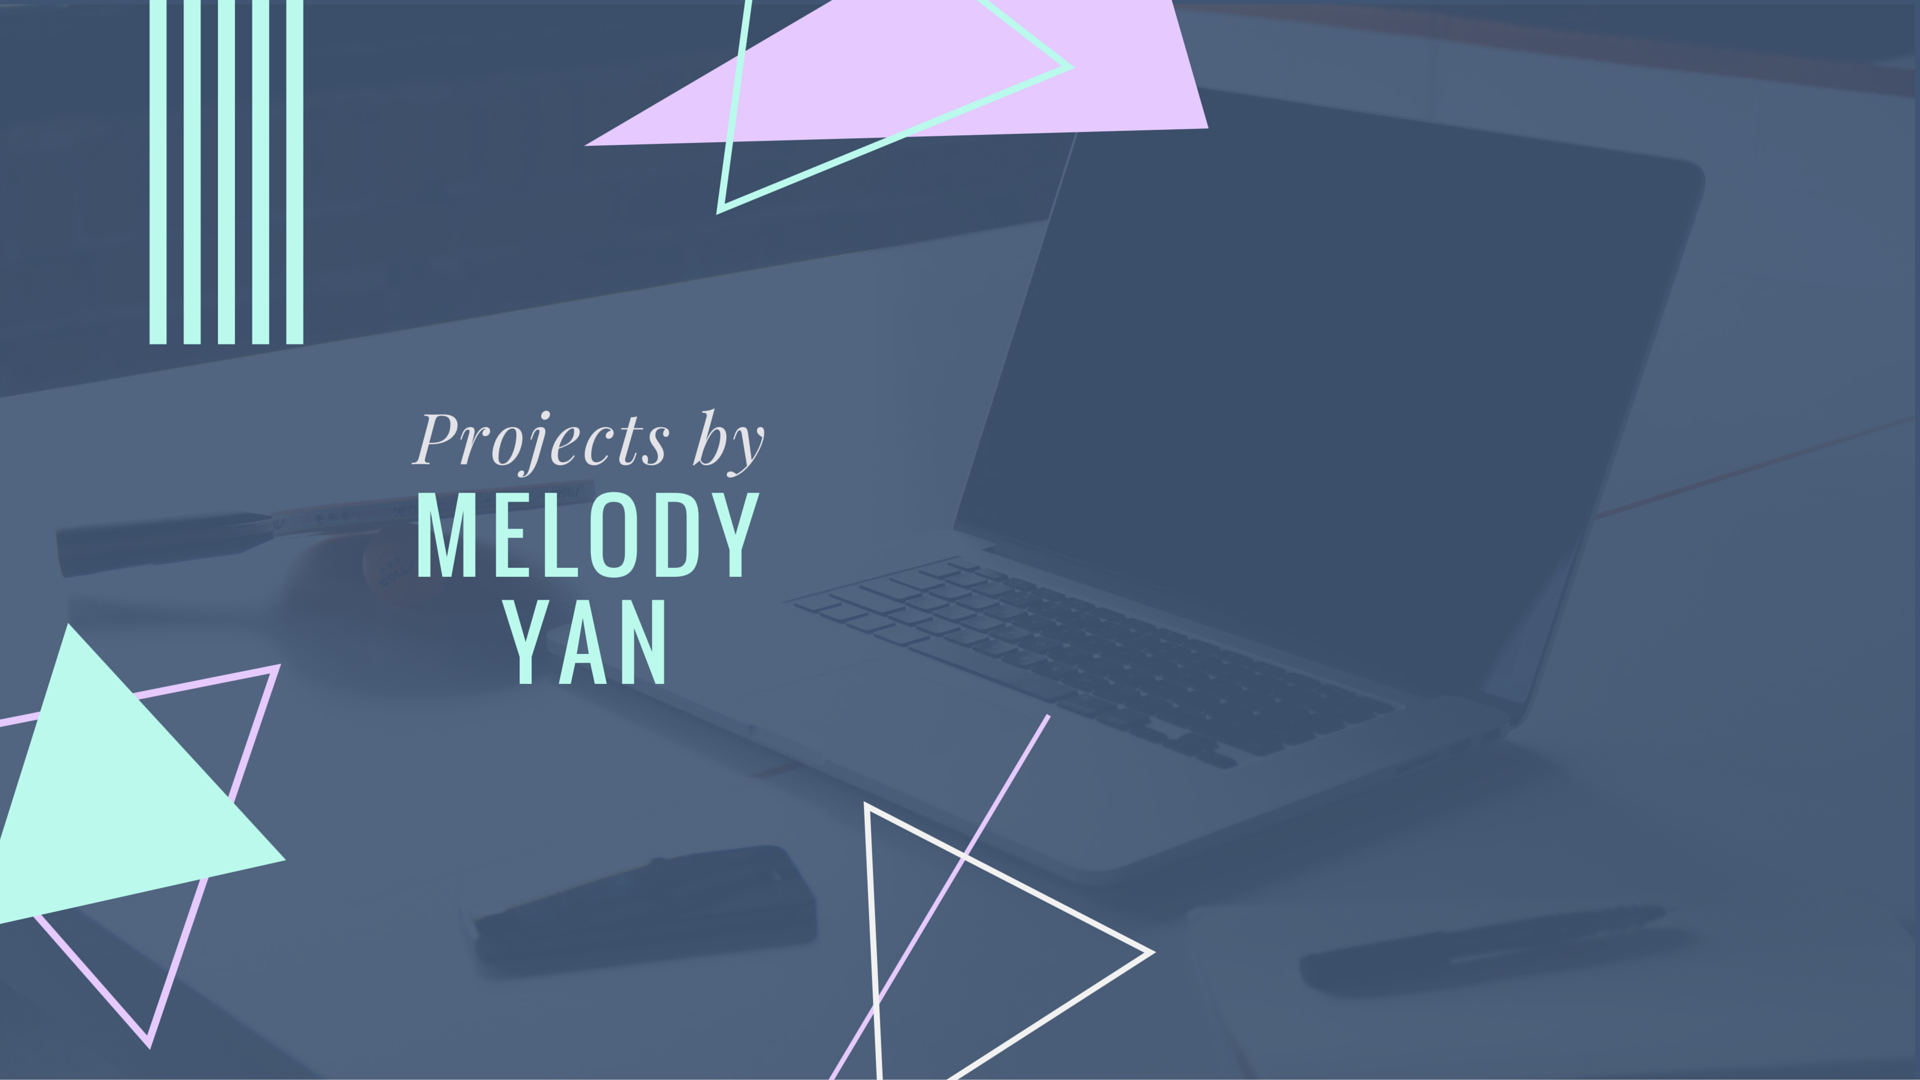 Projects by Melody Yan